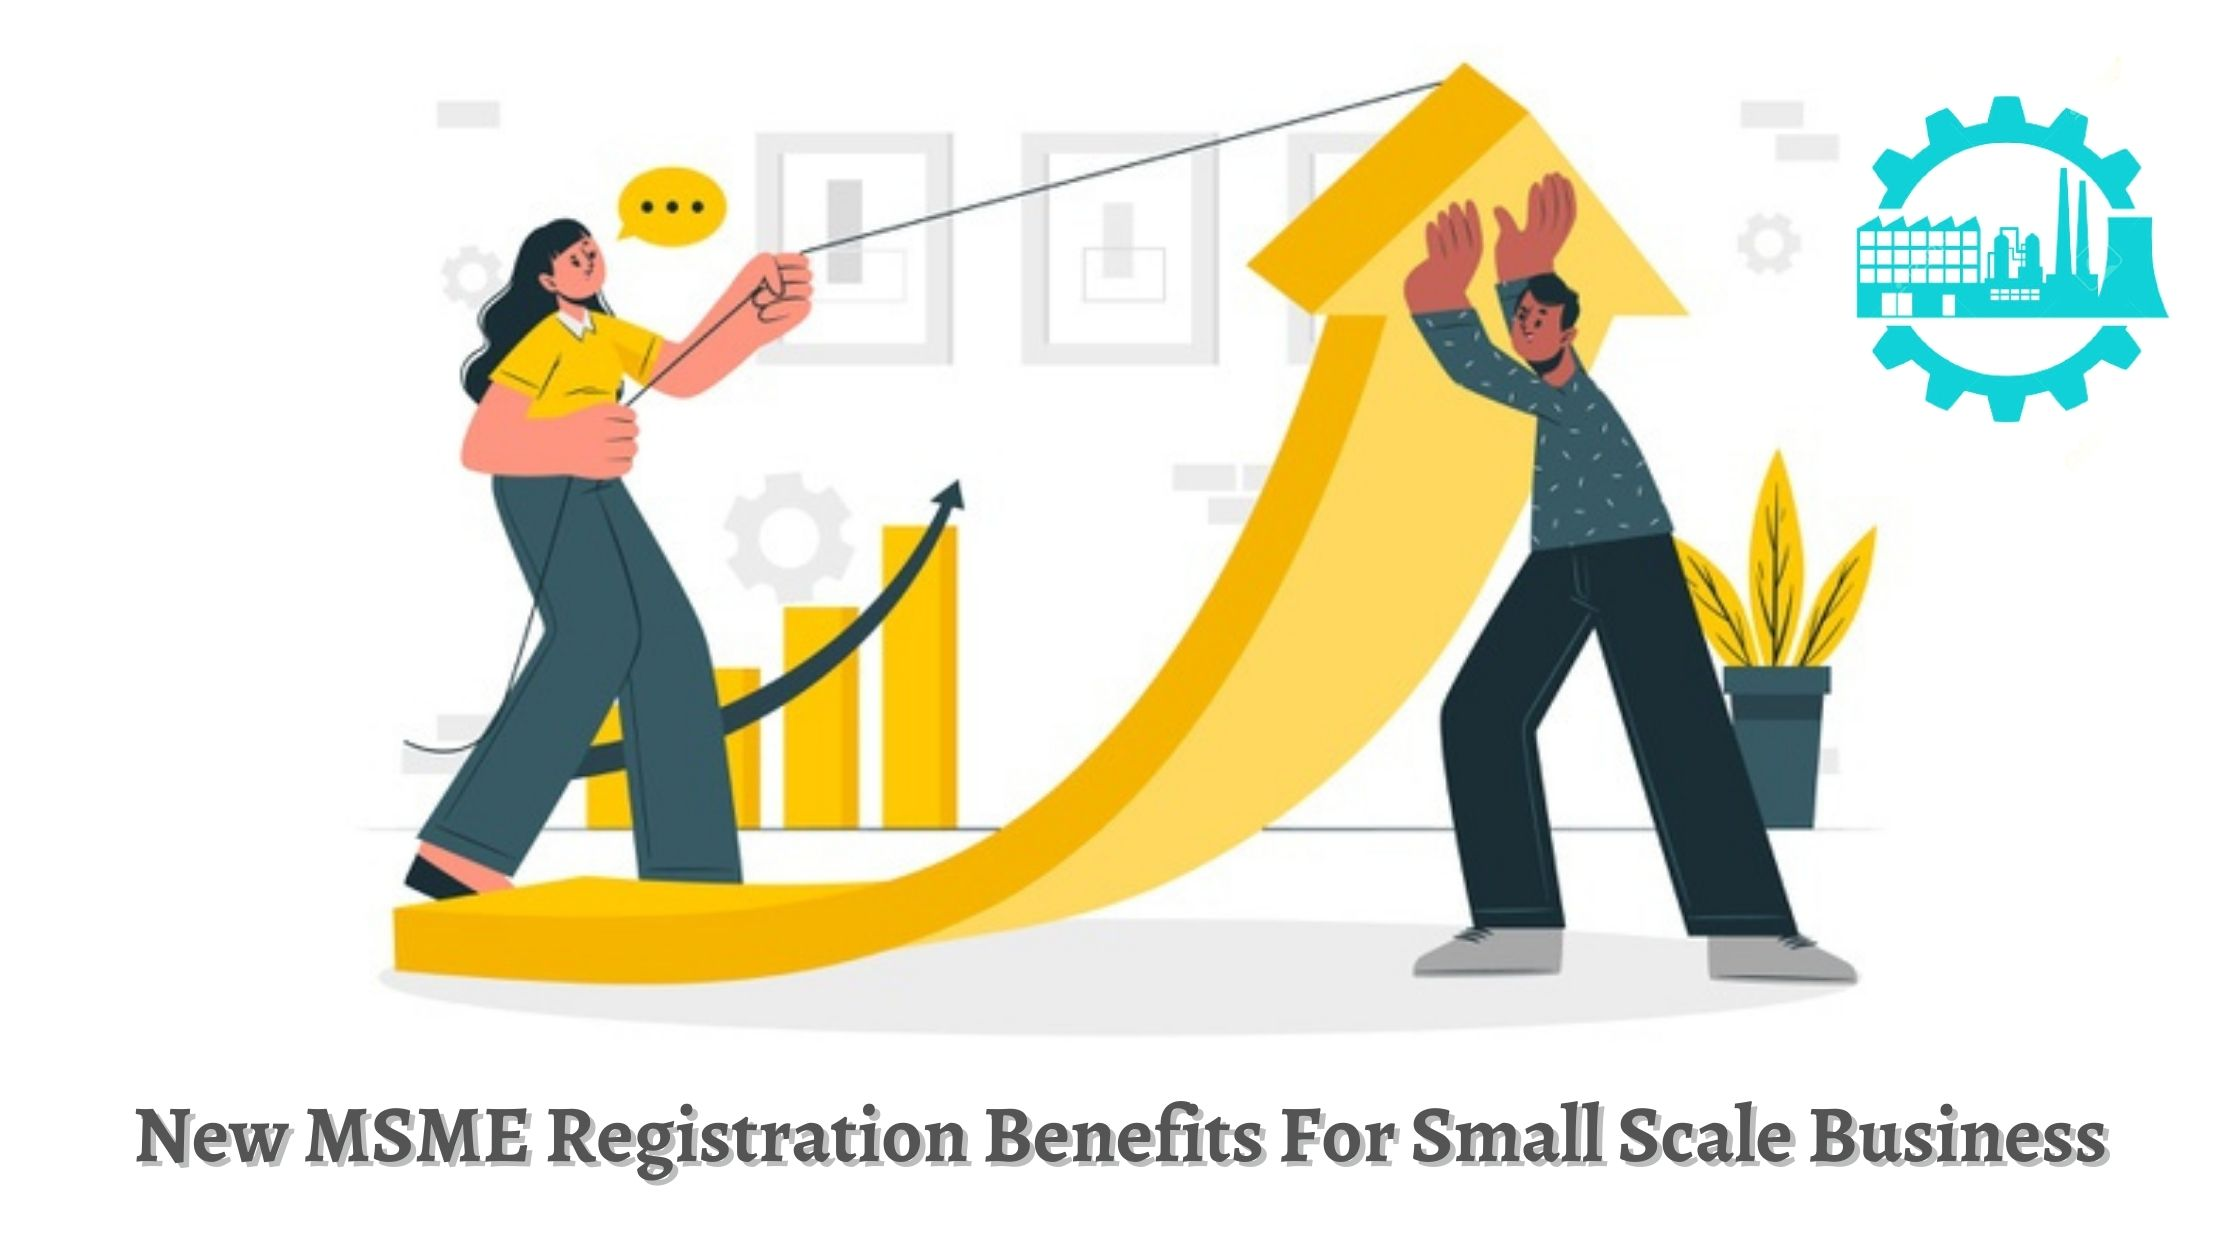 New MSME Registration Benefits For Small Scale Business